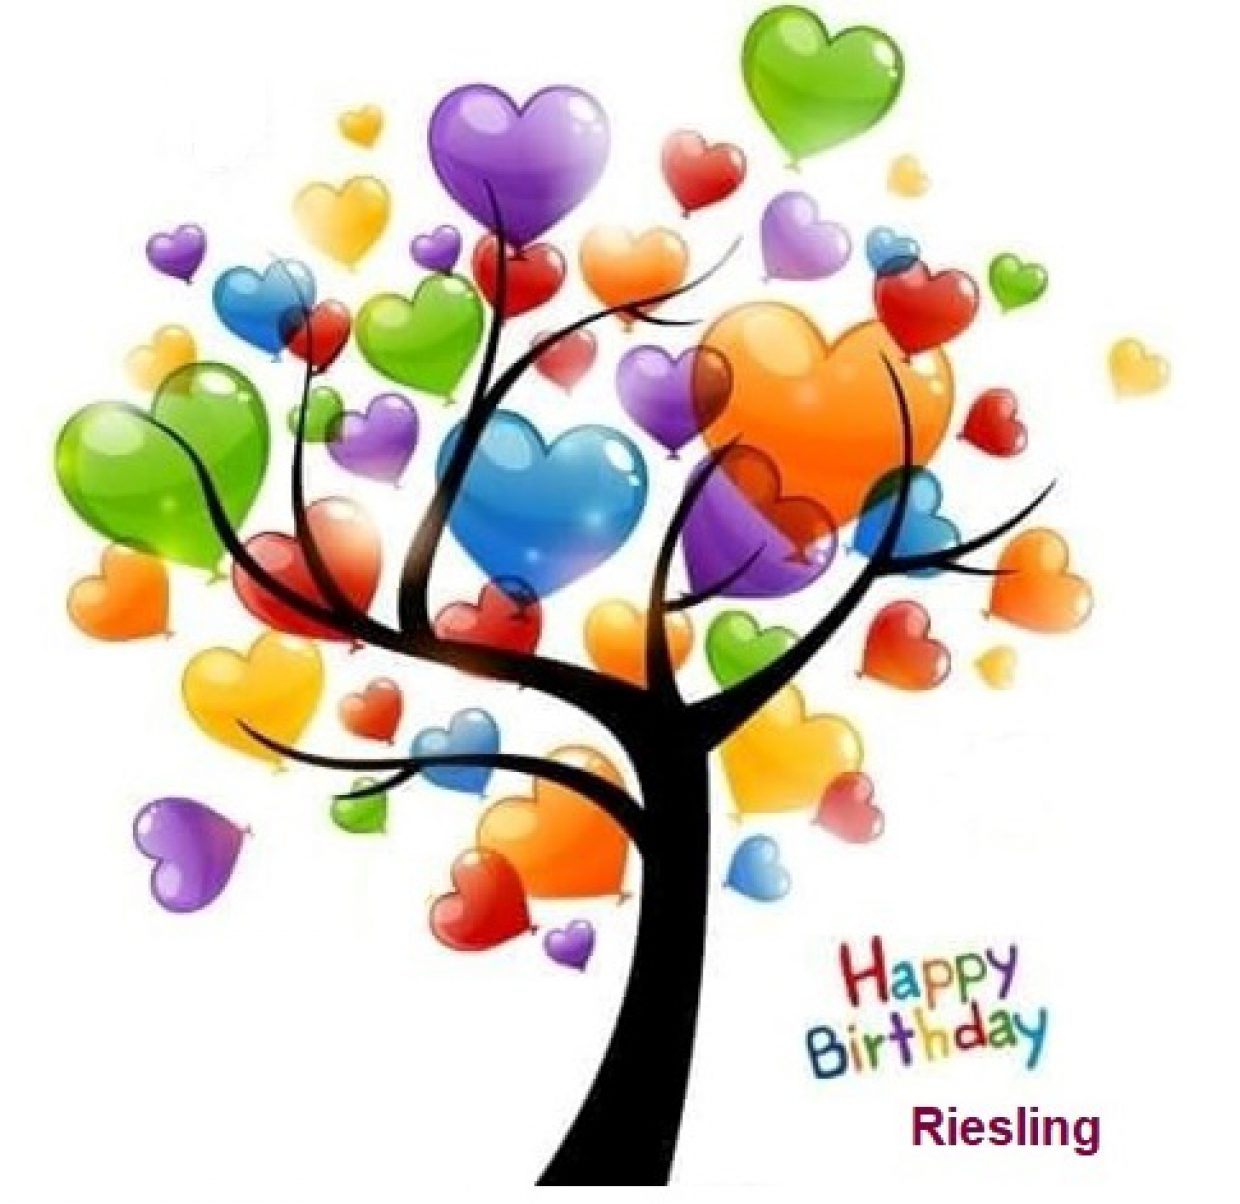 Happy Birthday Riesling Party am 13.03.2020